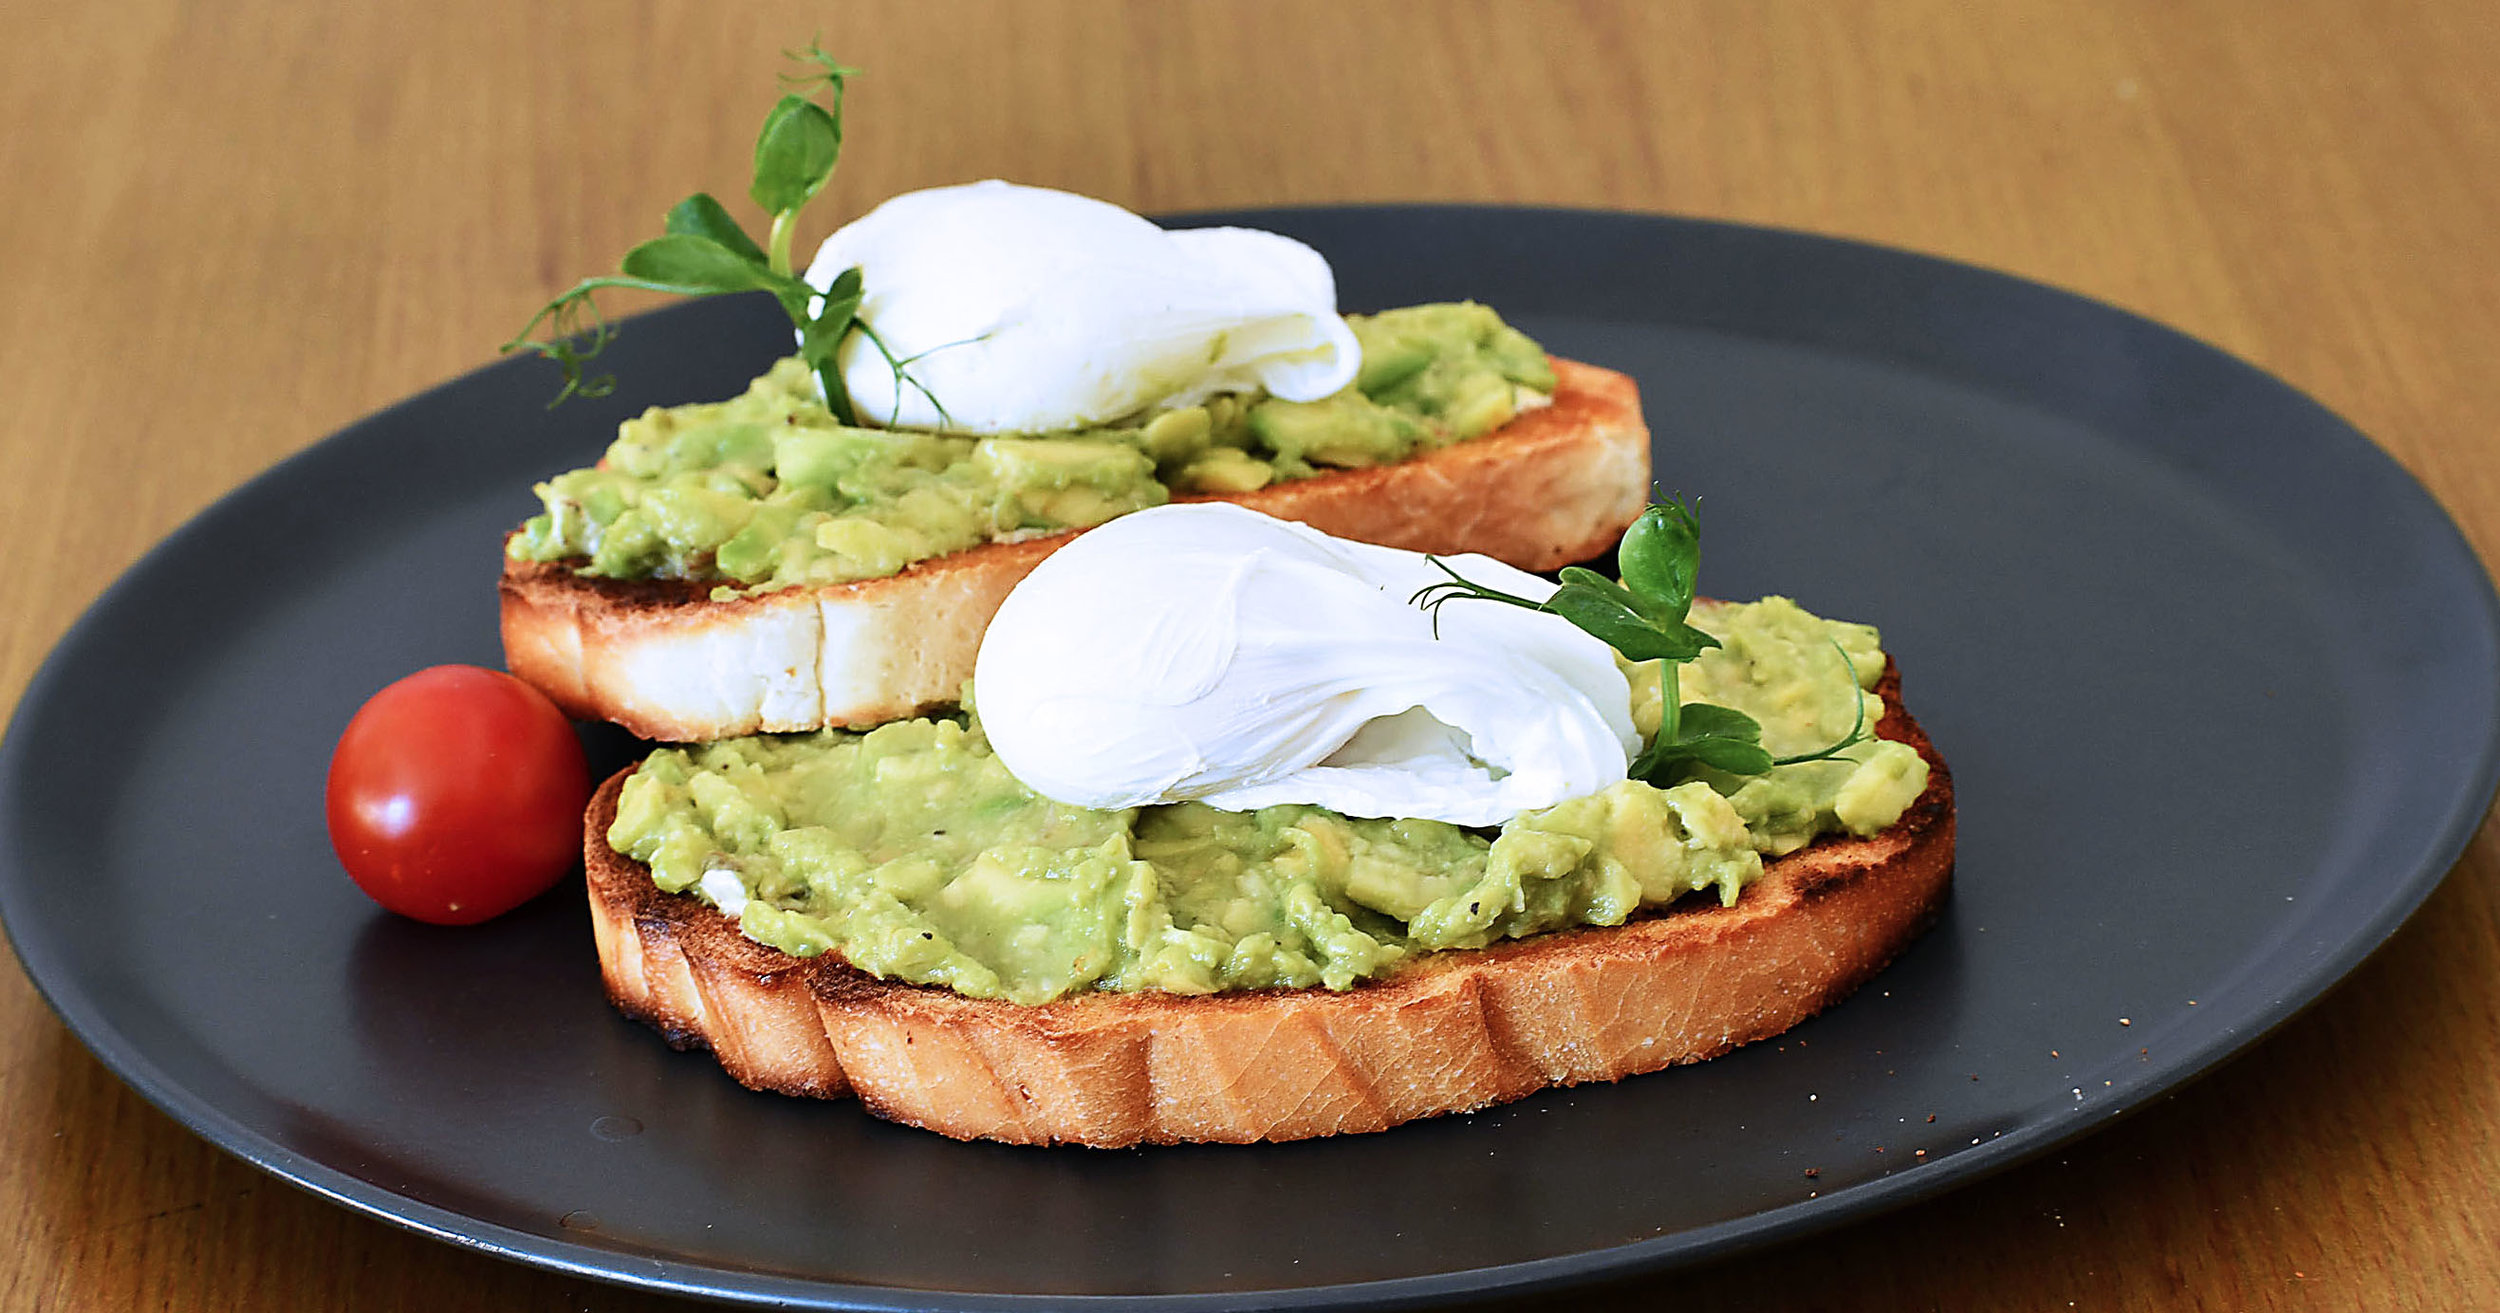 Greedies-Avocado & Poached Egg on Toast copy.jpg